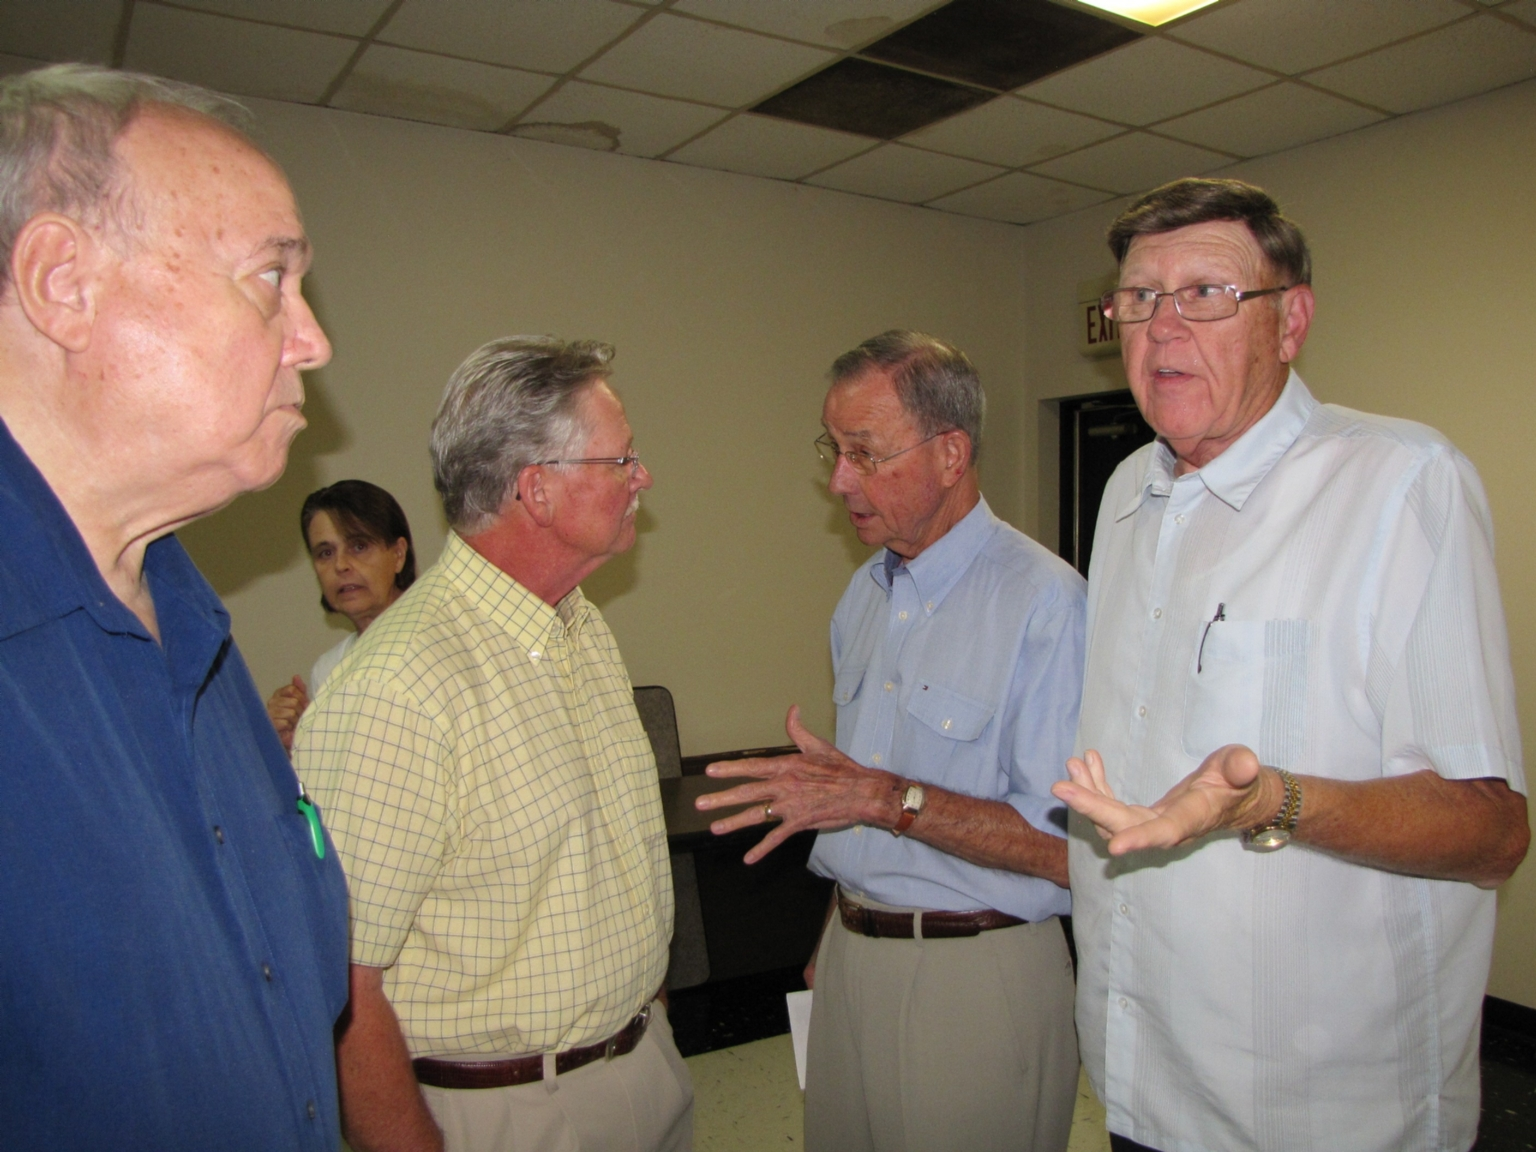 """Leo Green, Gary McMillin, Don Van Cleve and Charlie Katterjohn at """"old employees' luncheon"""""""